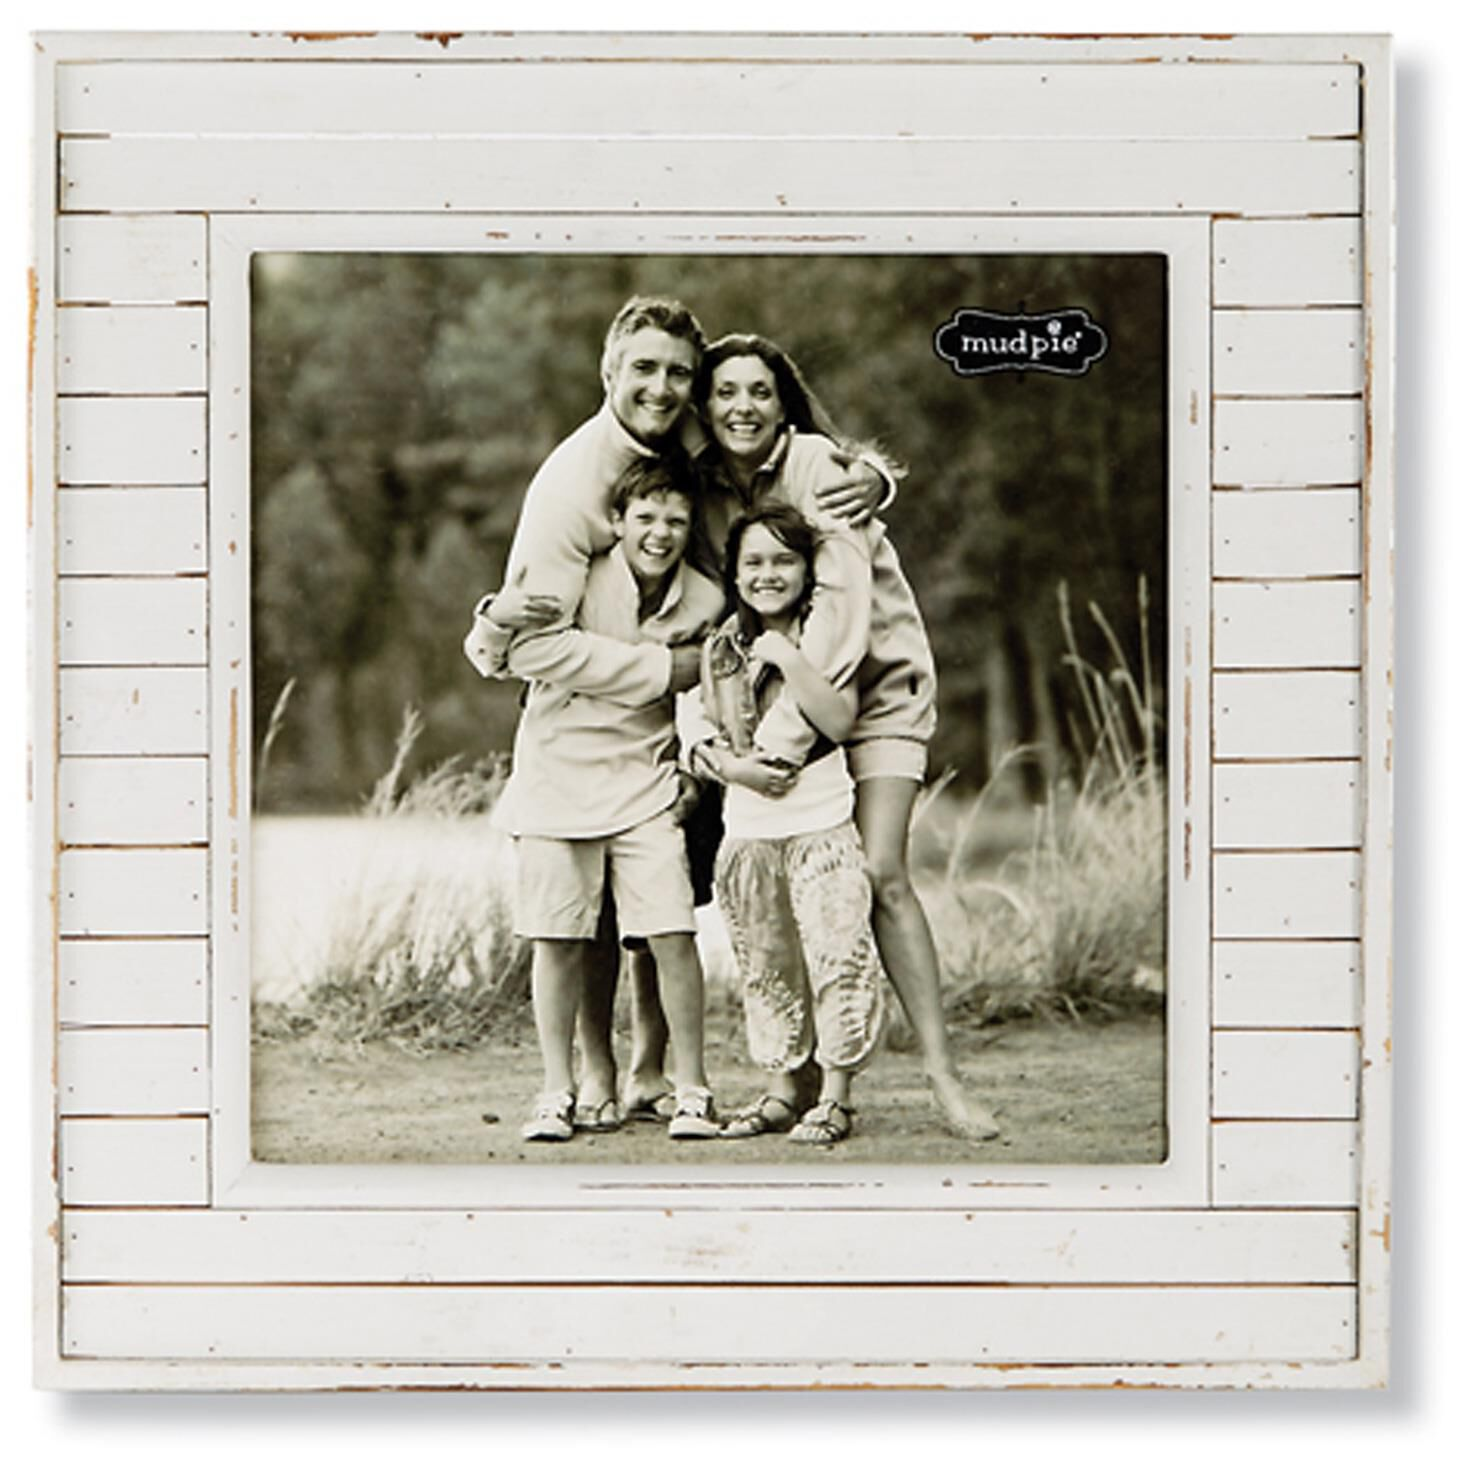 mud pie white wood square 10x10 picture frame picture frames hallmark - Mud Pie Frames